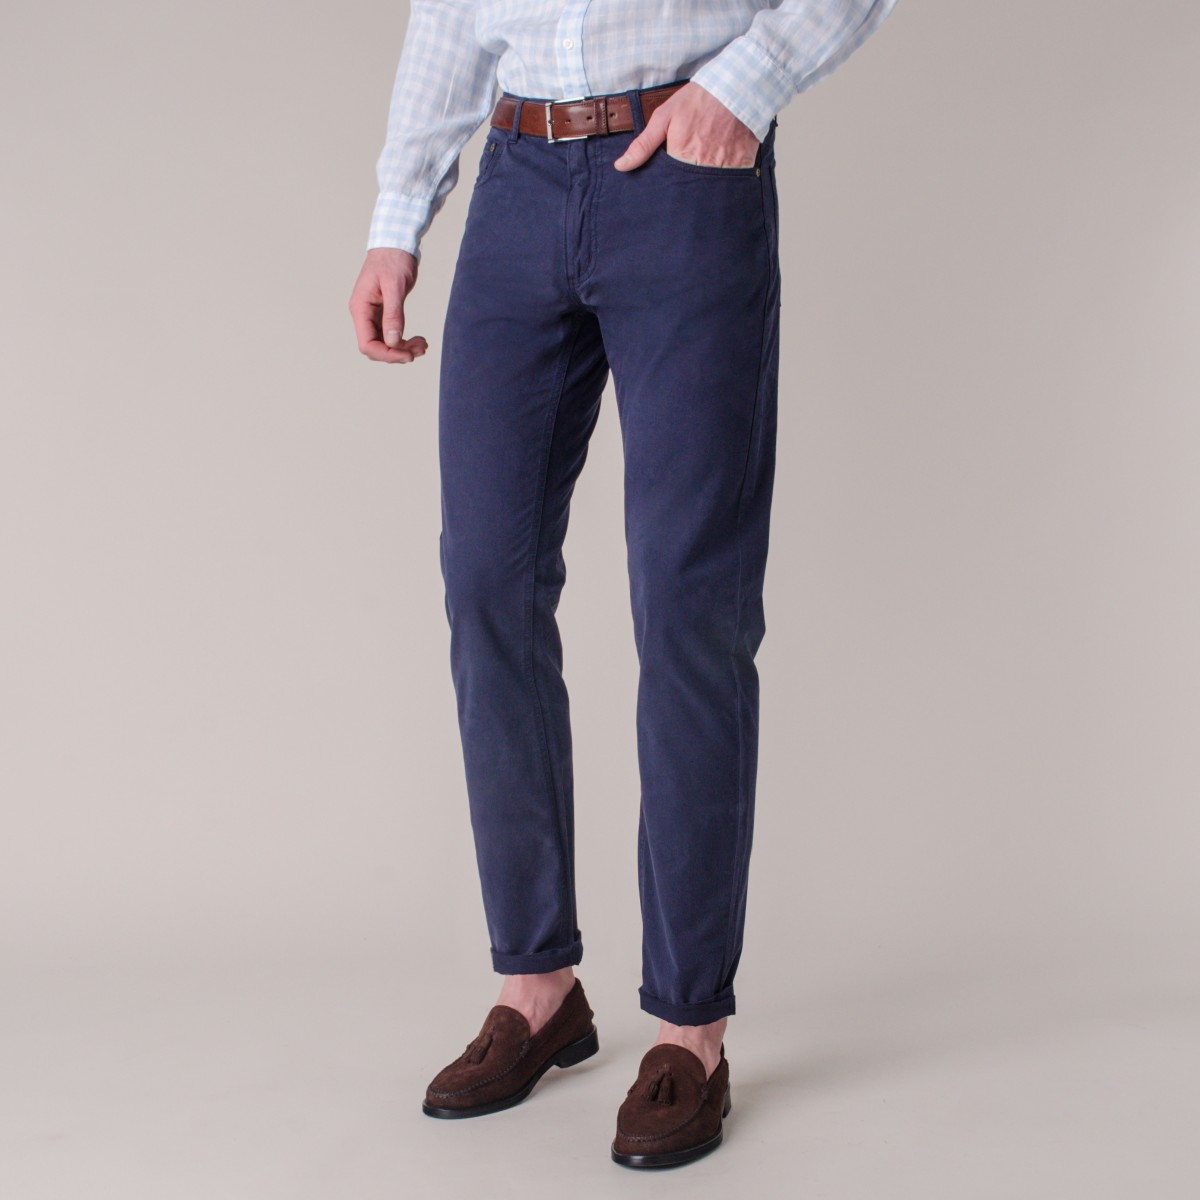 Pantalon 5 Pocket Calce Slim